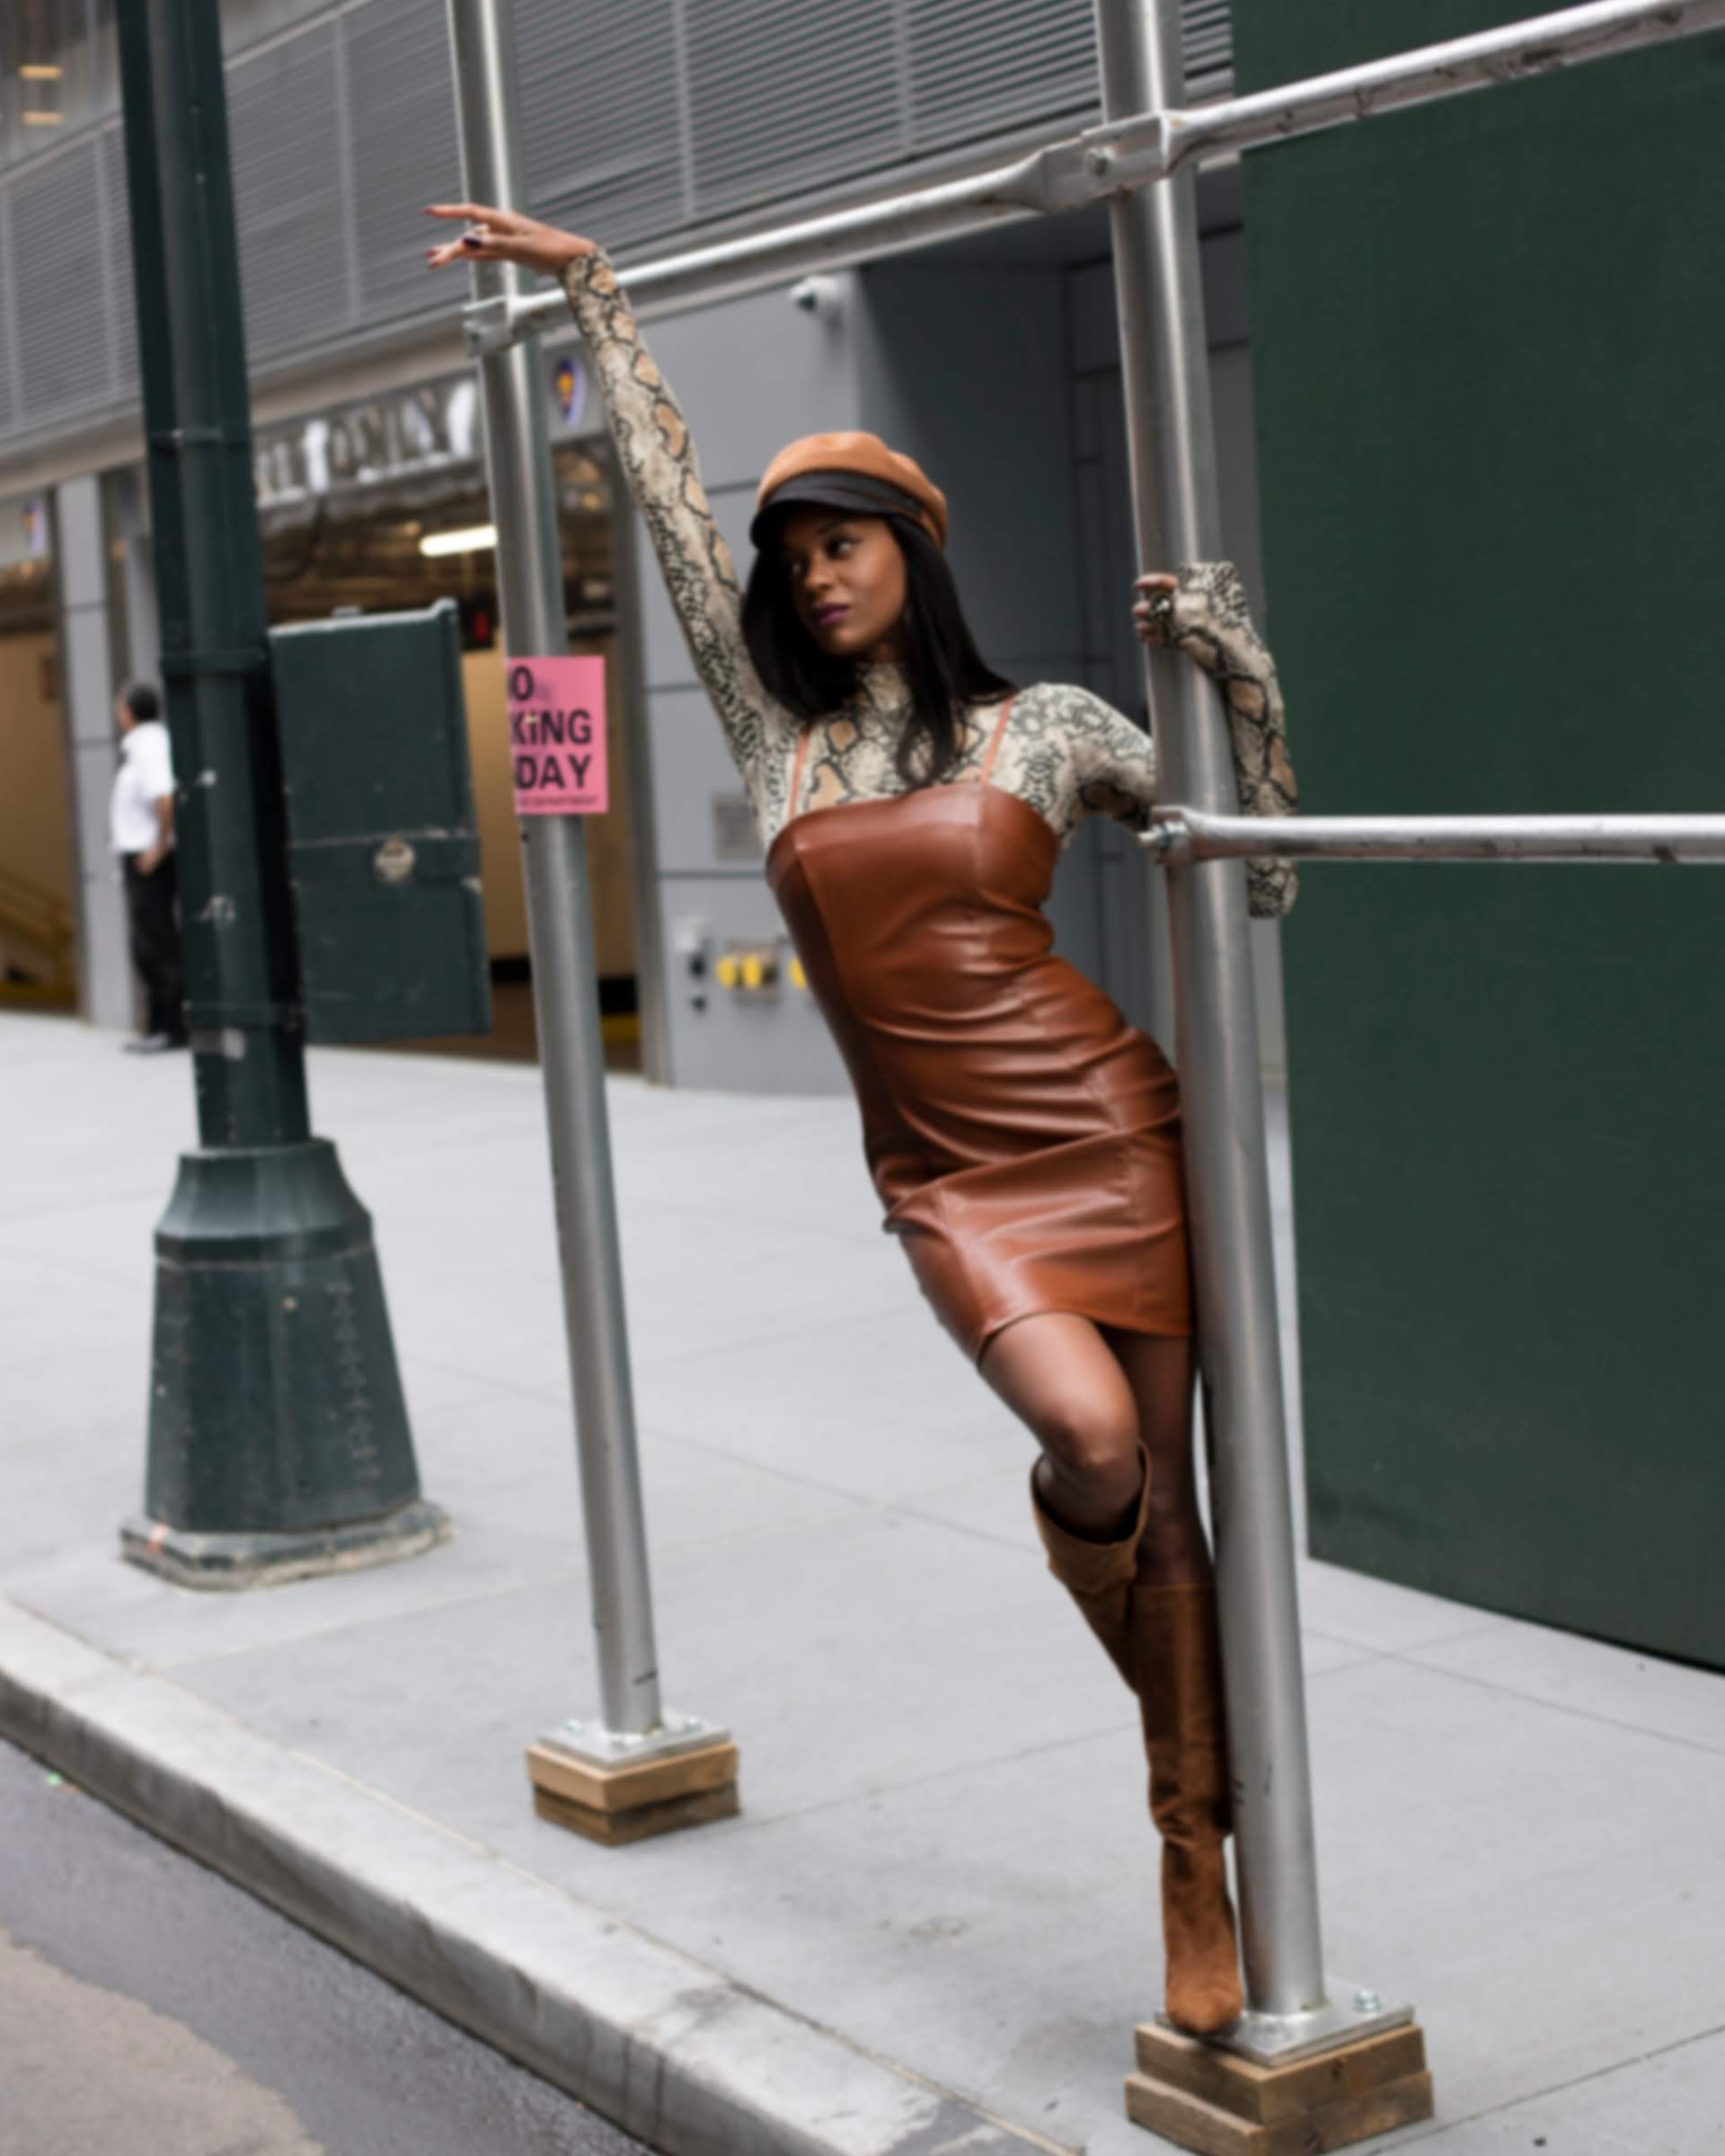 Girl wearing a brow hat, leather dress and boots with a snake print top holding a poll in NYC